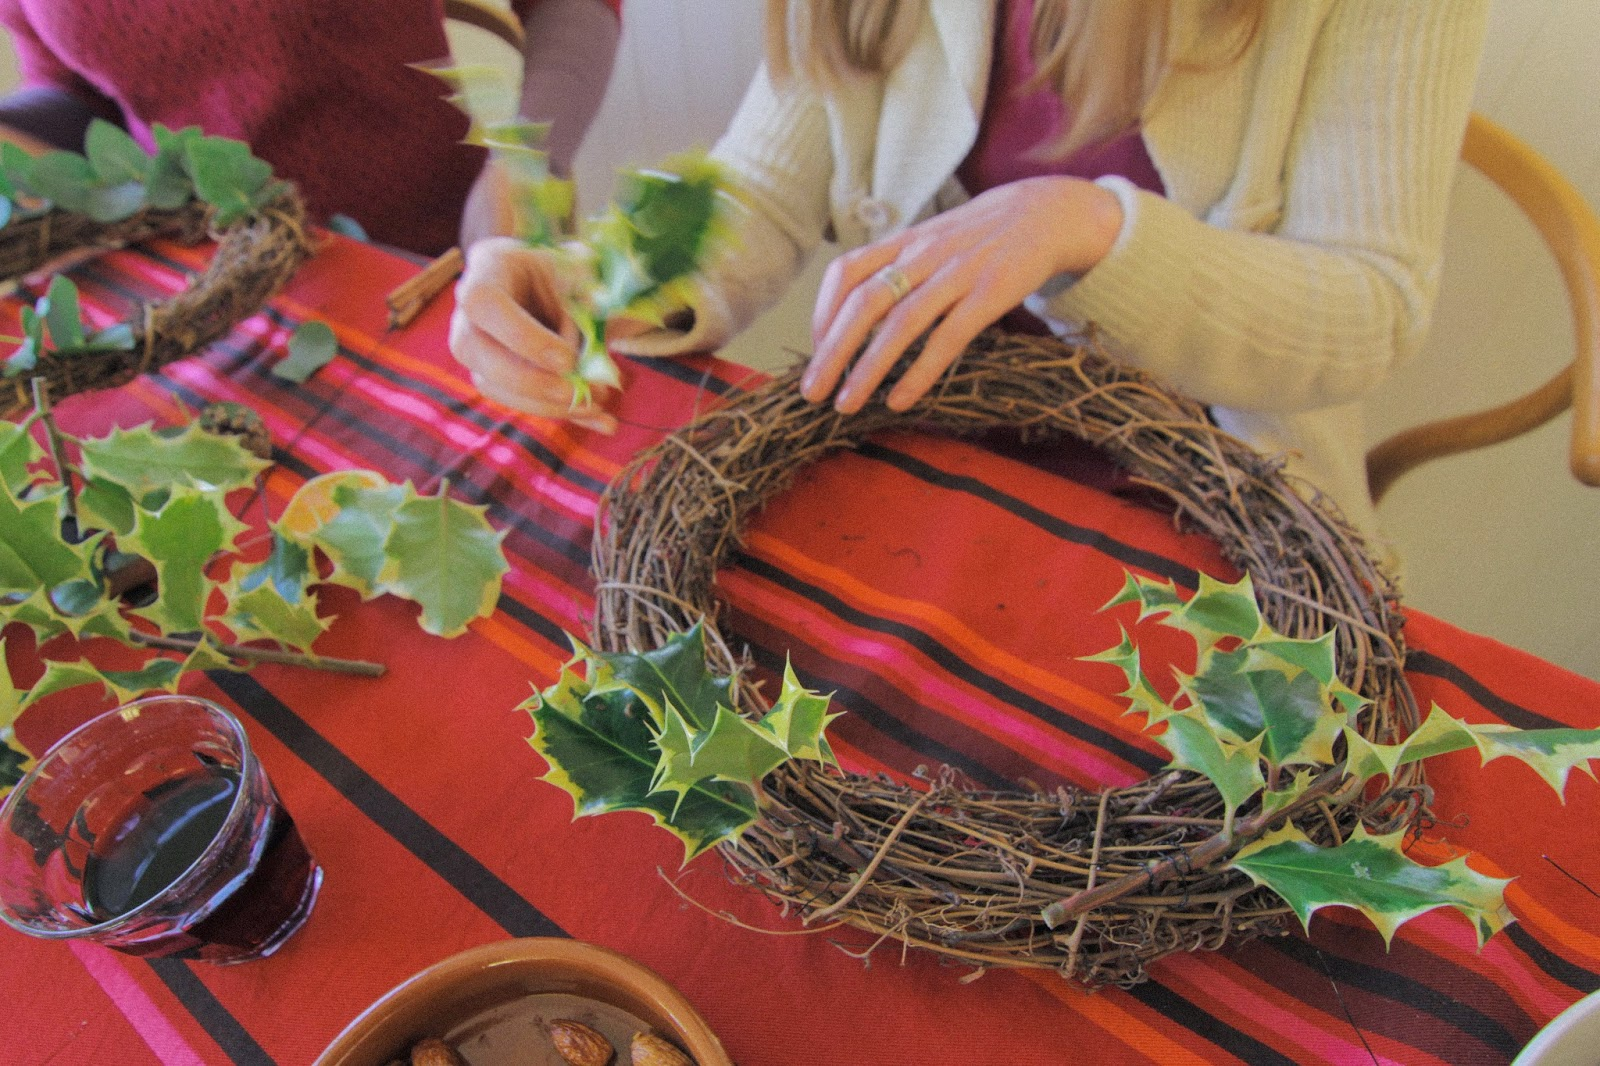 How to make a Christmas wreath - place greenery at regular intervals